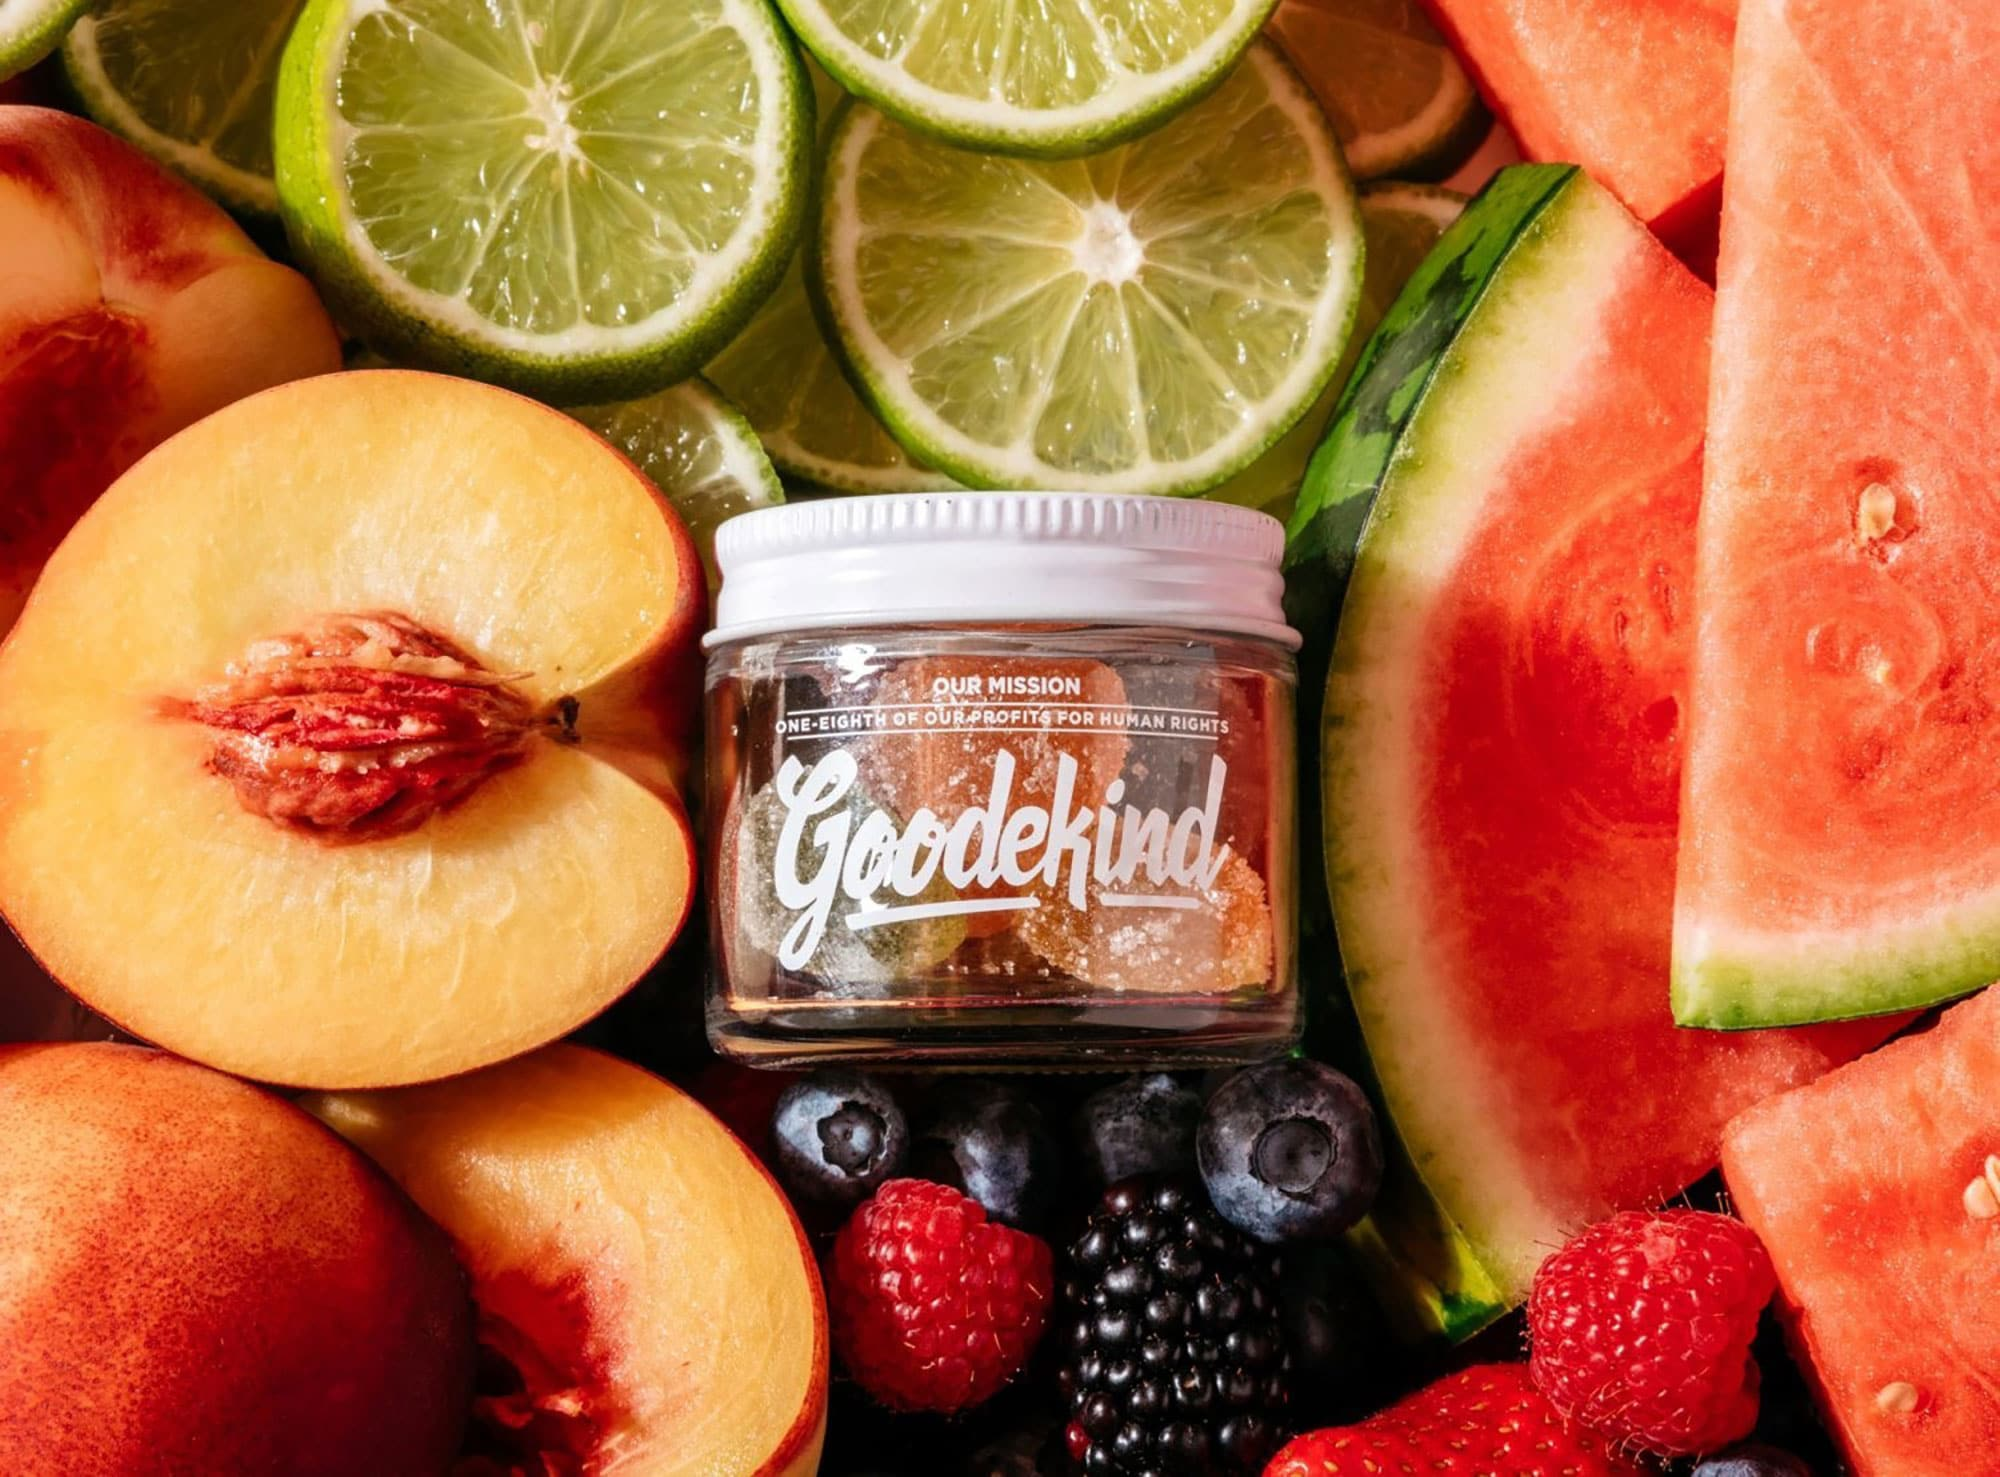 Goodekind's Delta 8 THC Gummies debuted in two types of sustainable packaging—a lightweight bag and the recyclable-and-reusable jar pictured here.